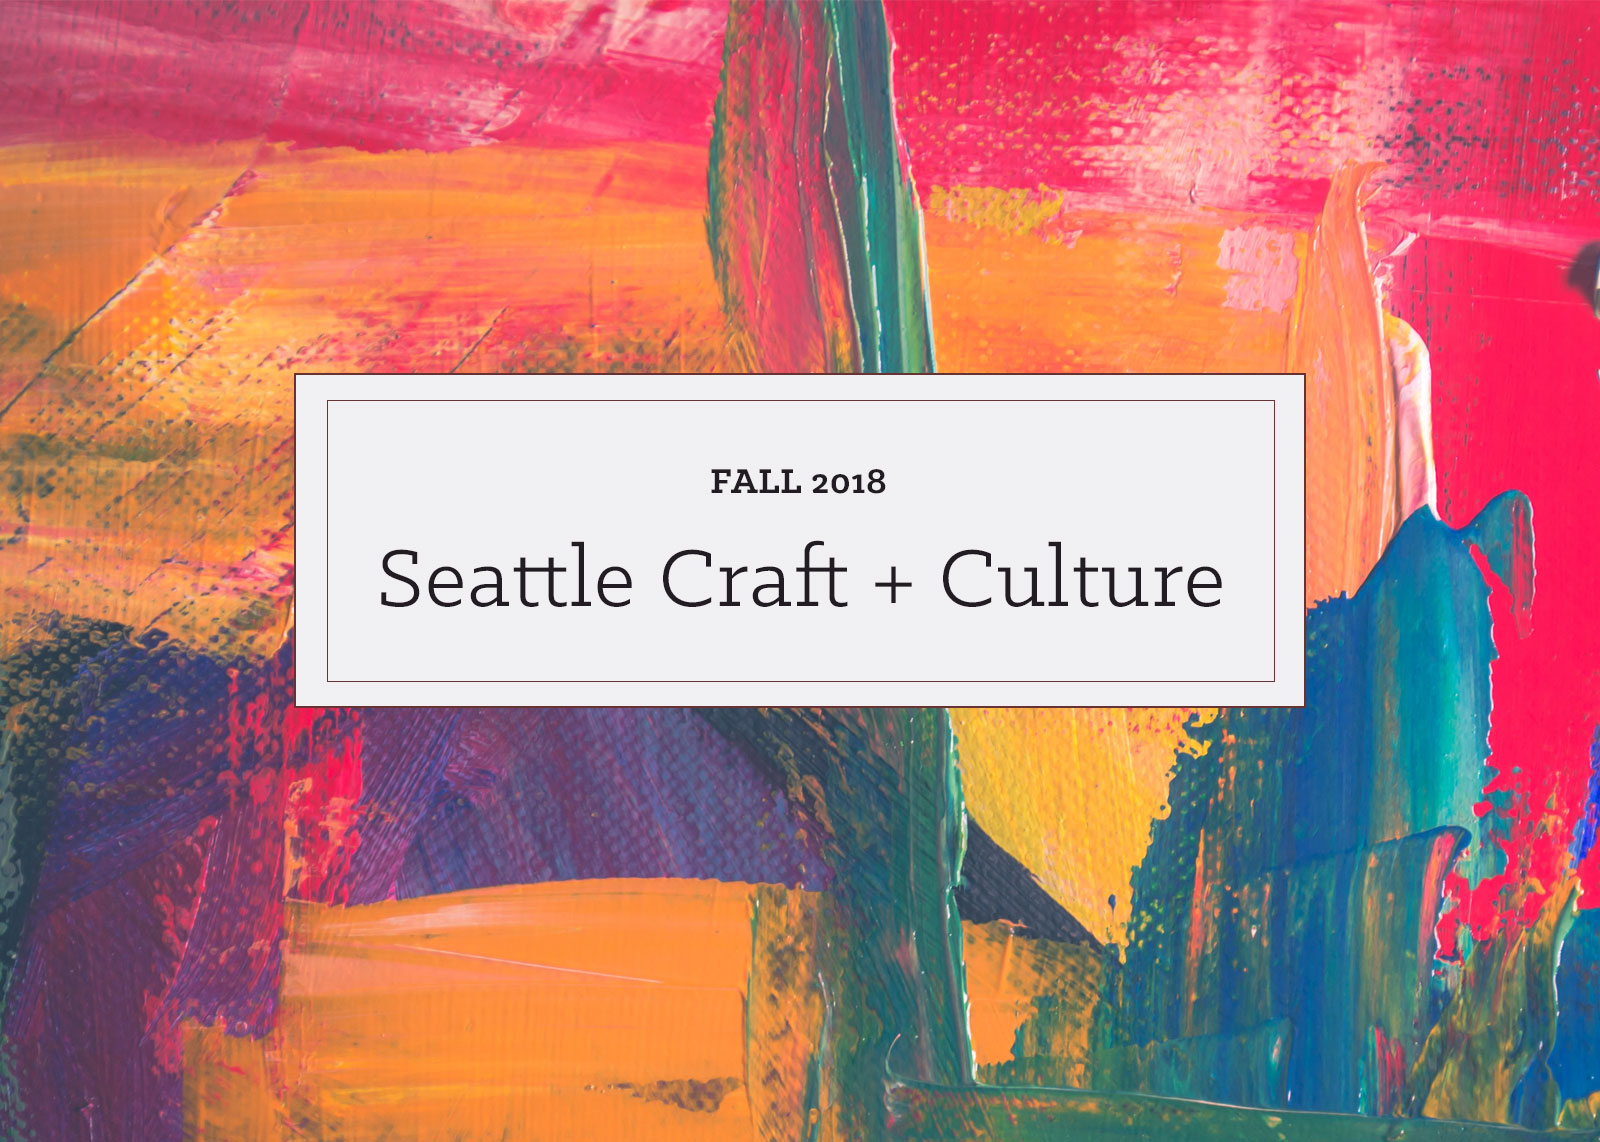 Fall 2018 Seattle Craft and Culture